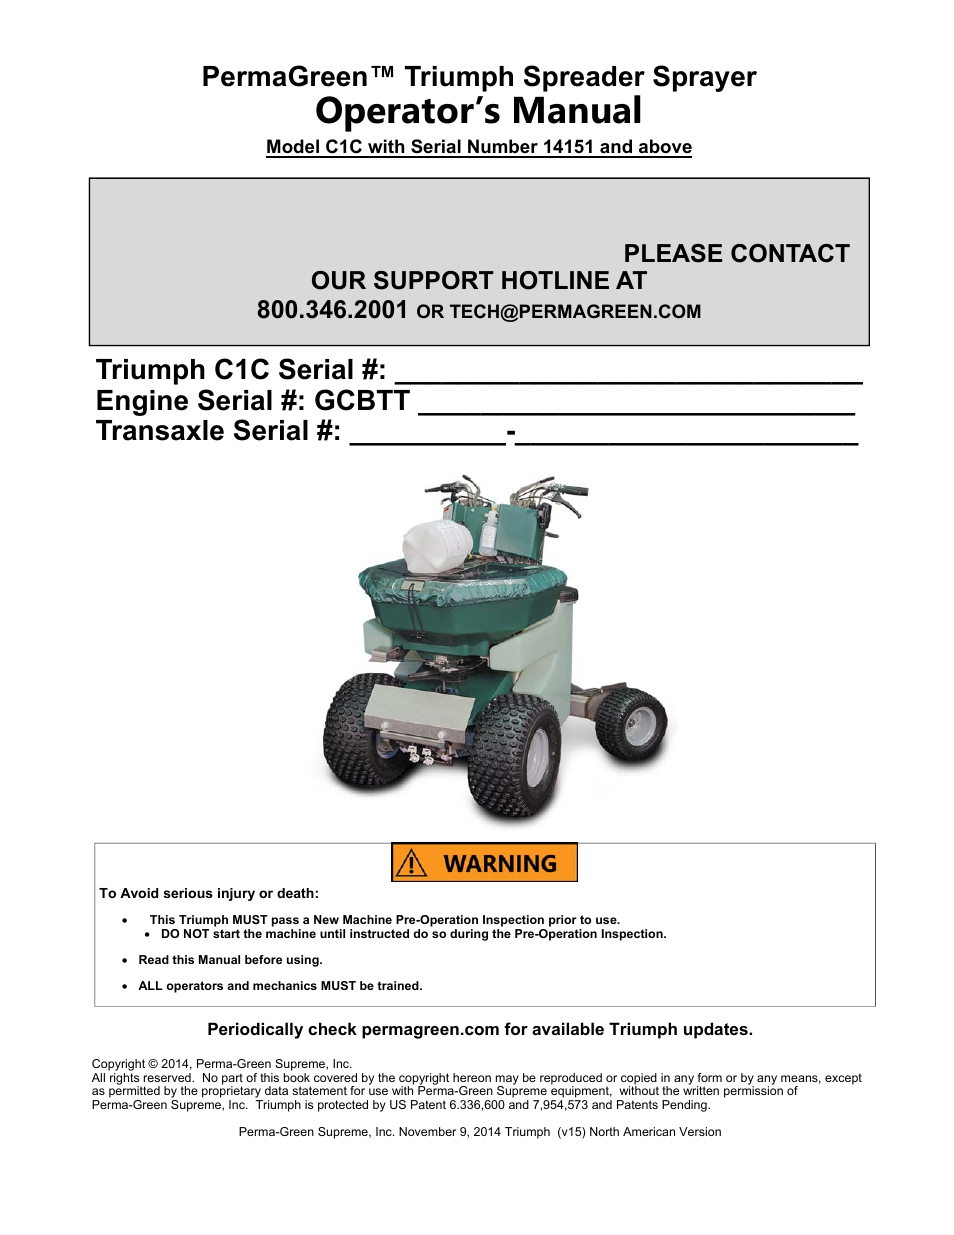 PermaGreen Triumph Spread-Only User Manual | 44 pages | Also for: Triumph  Spreader Sprayer